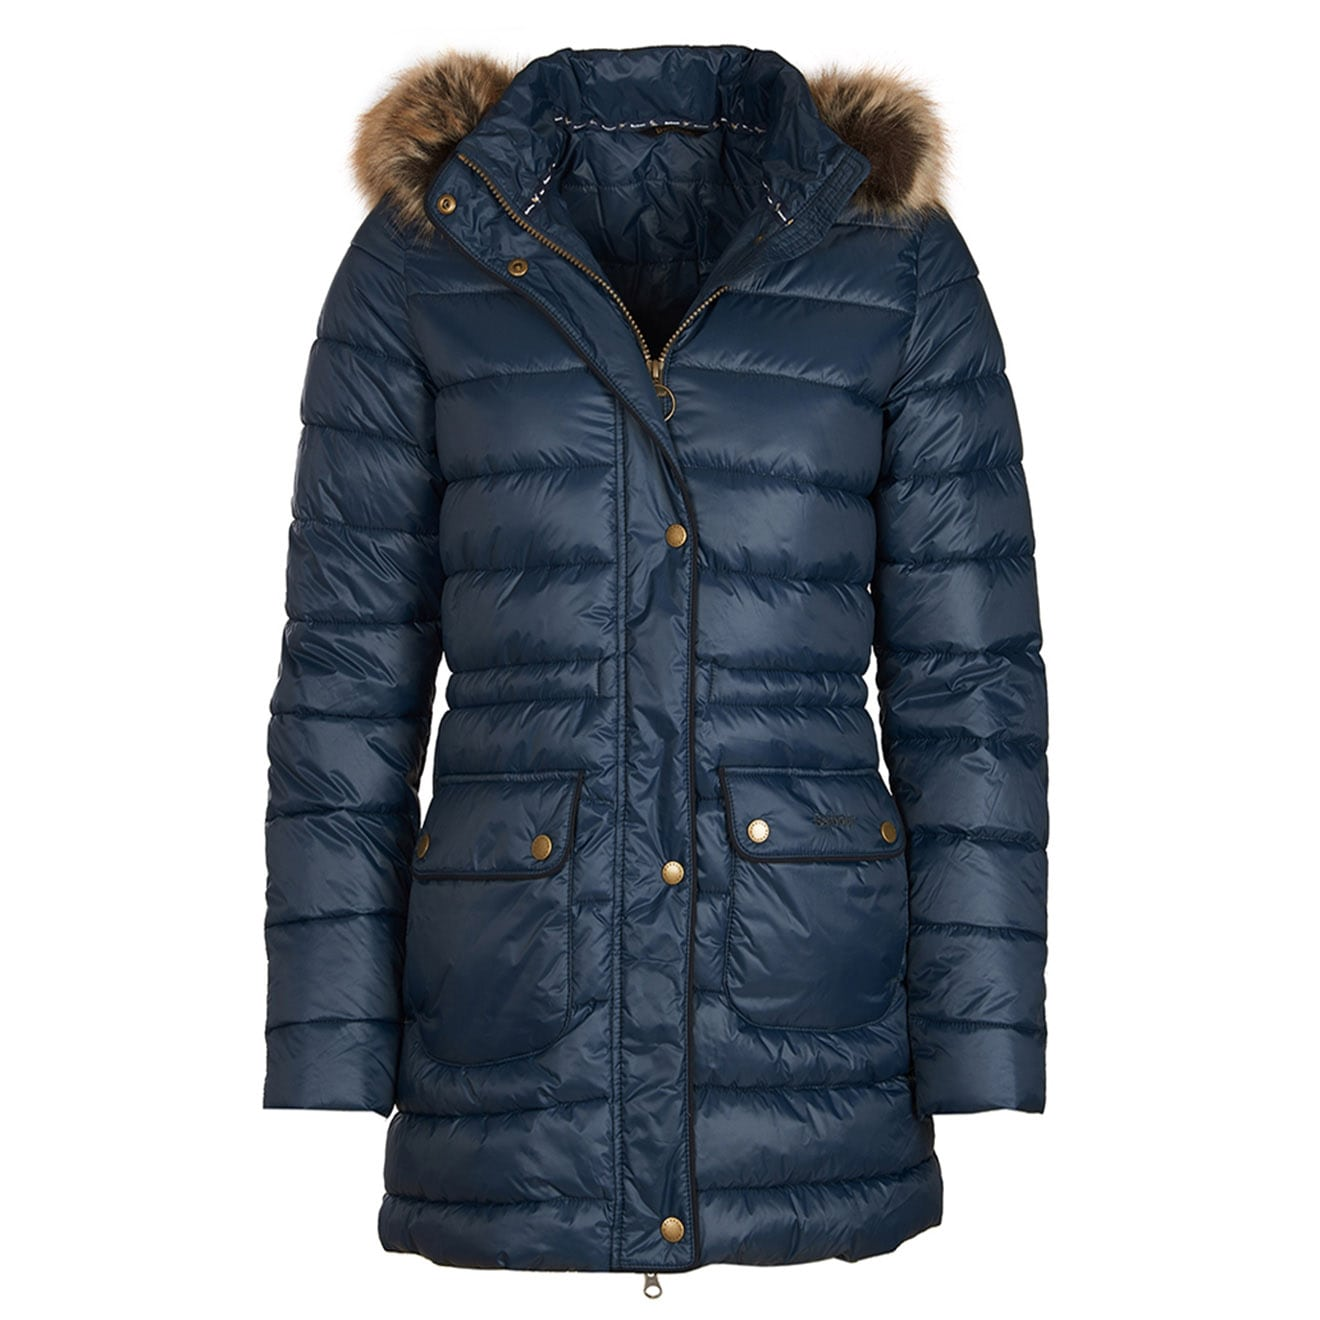 1d55db5caee4dd Barbour Womens Redpoll Quilted Jacket Navy - The Sporting Lodge